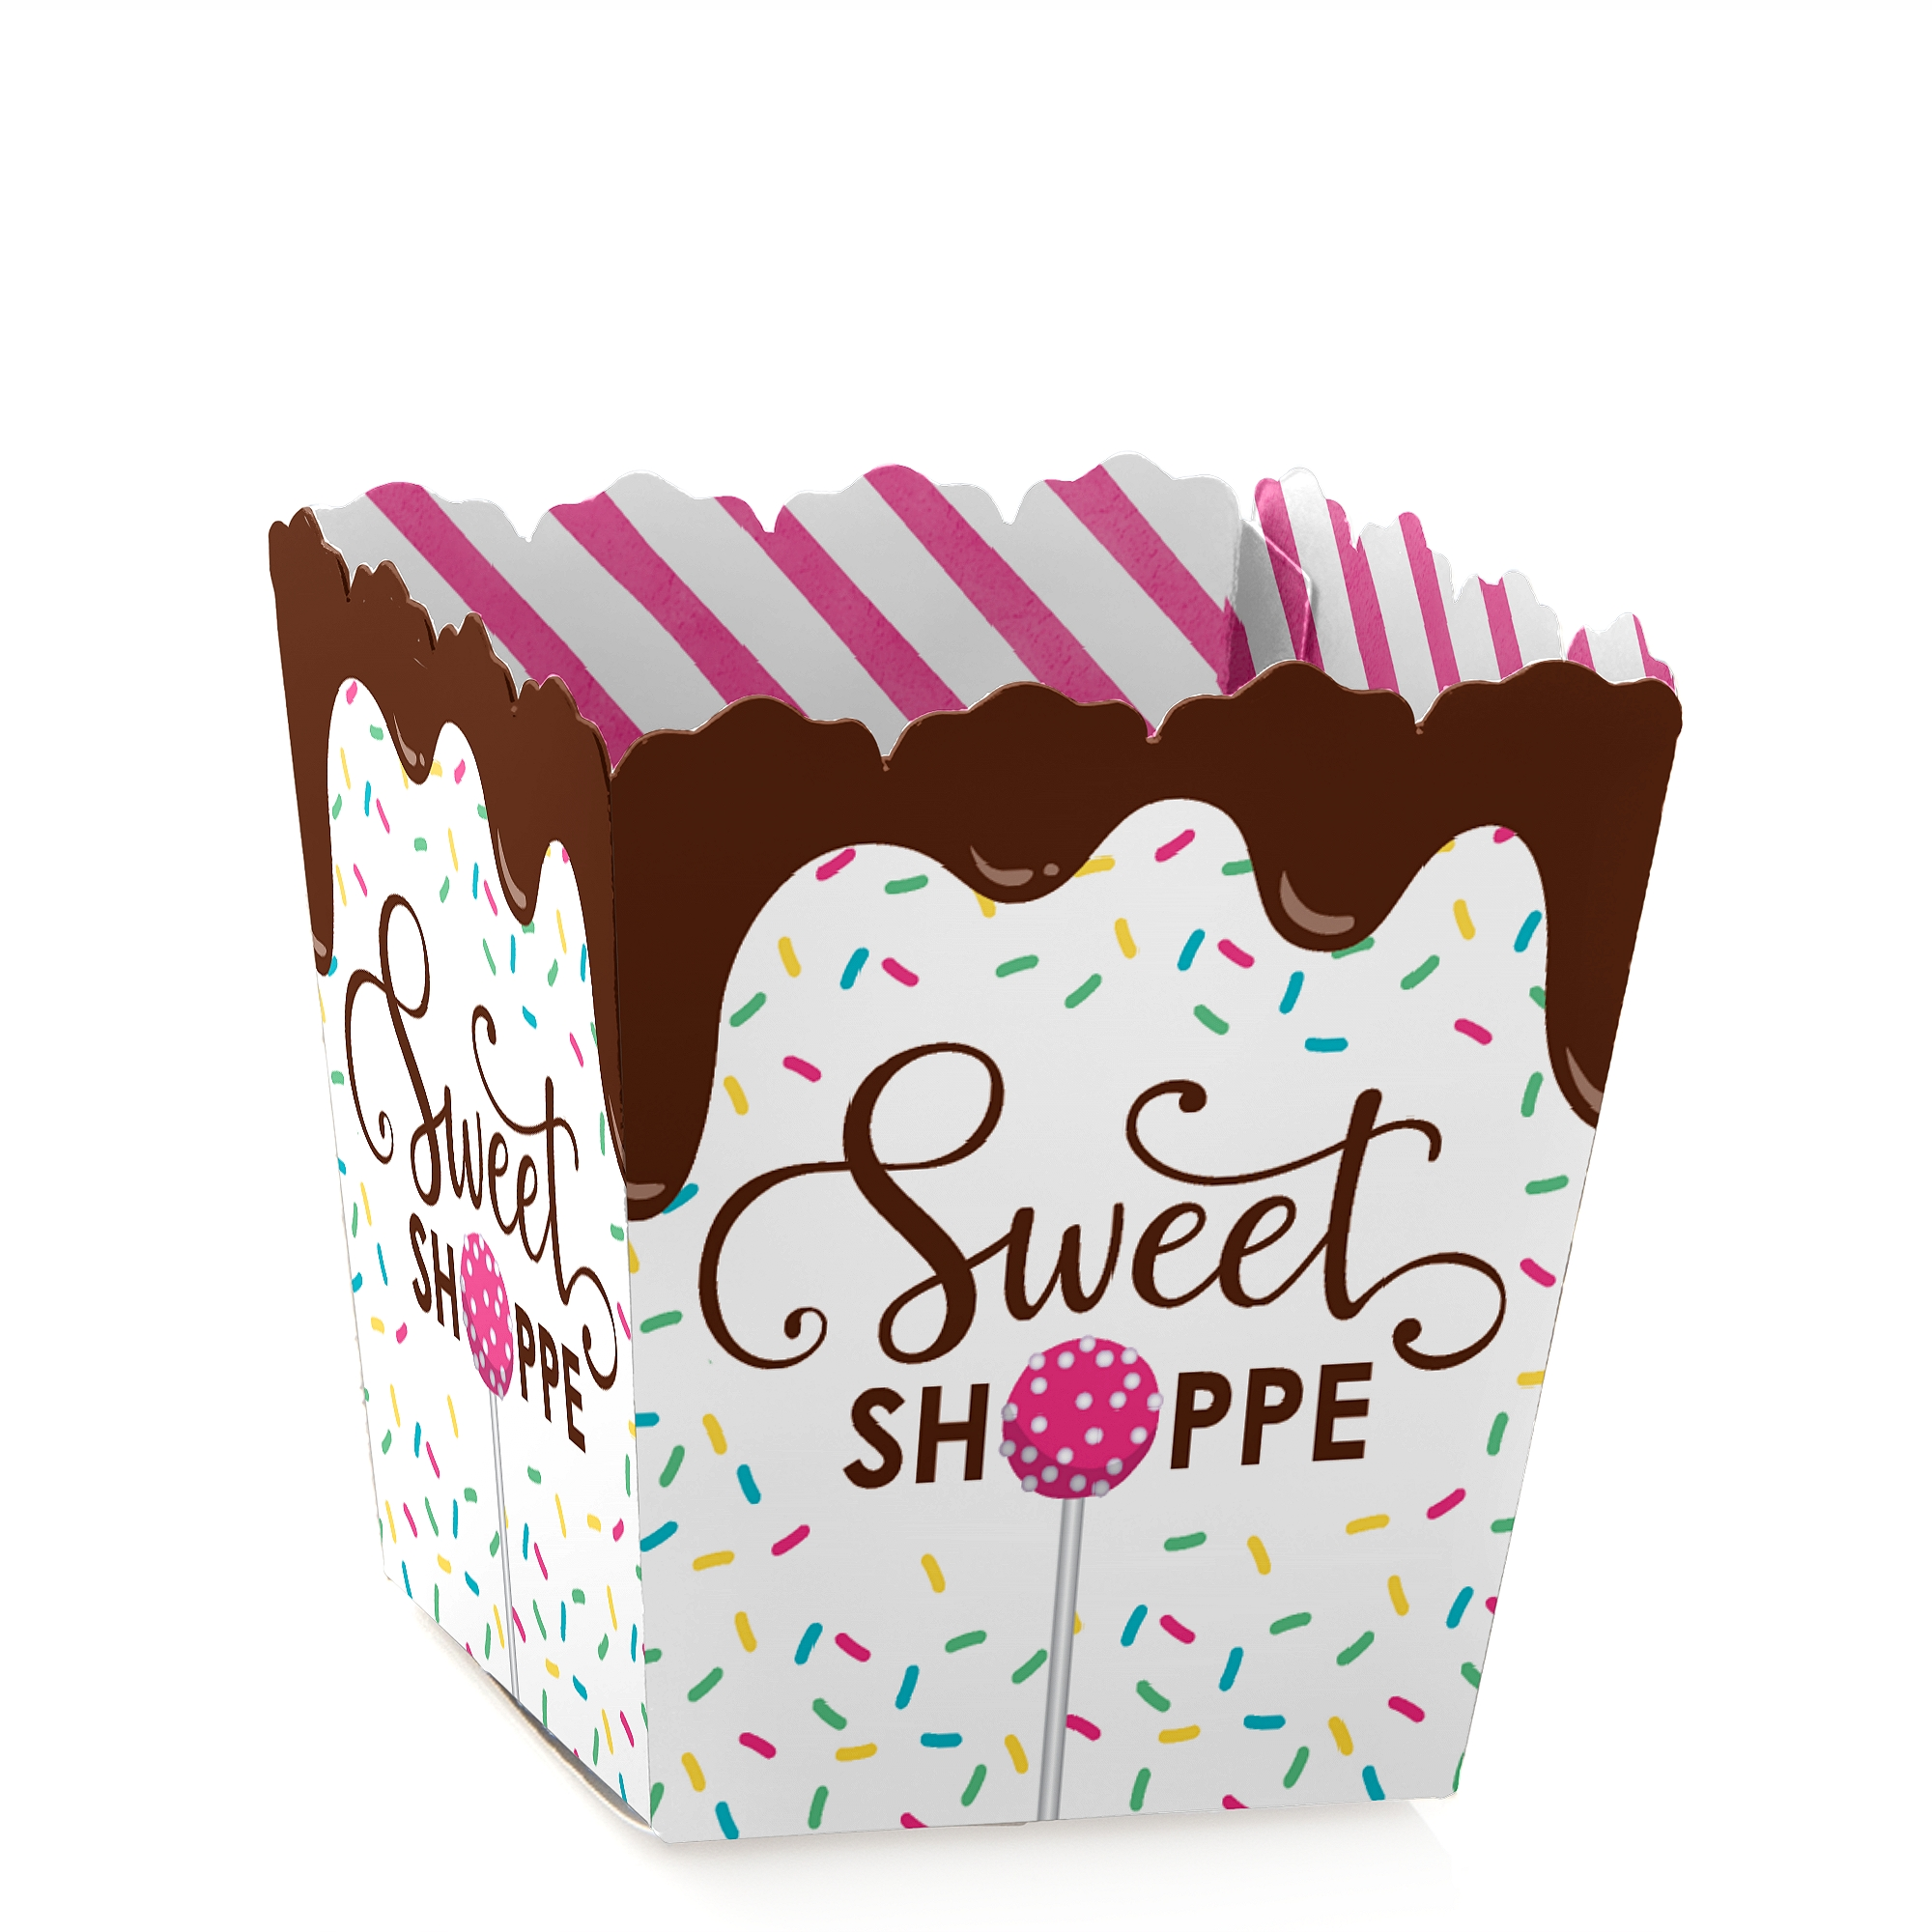 Sweet Shoppe - Candy and Bakery or Birthday Mini Treat Candy Boxes ...